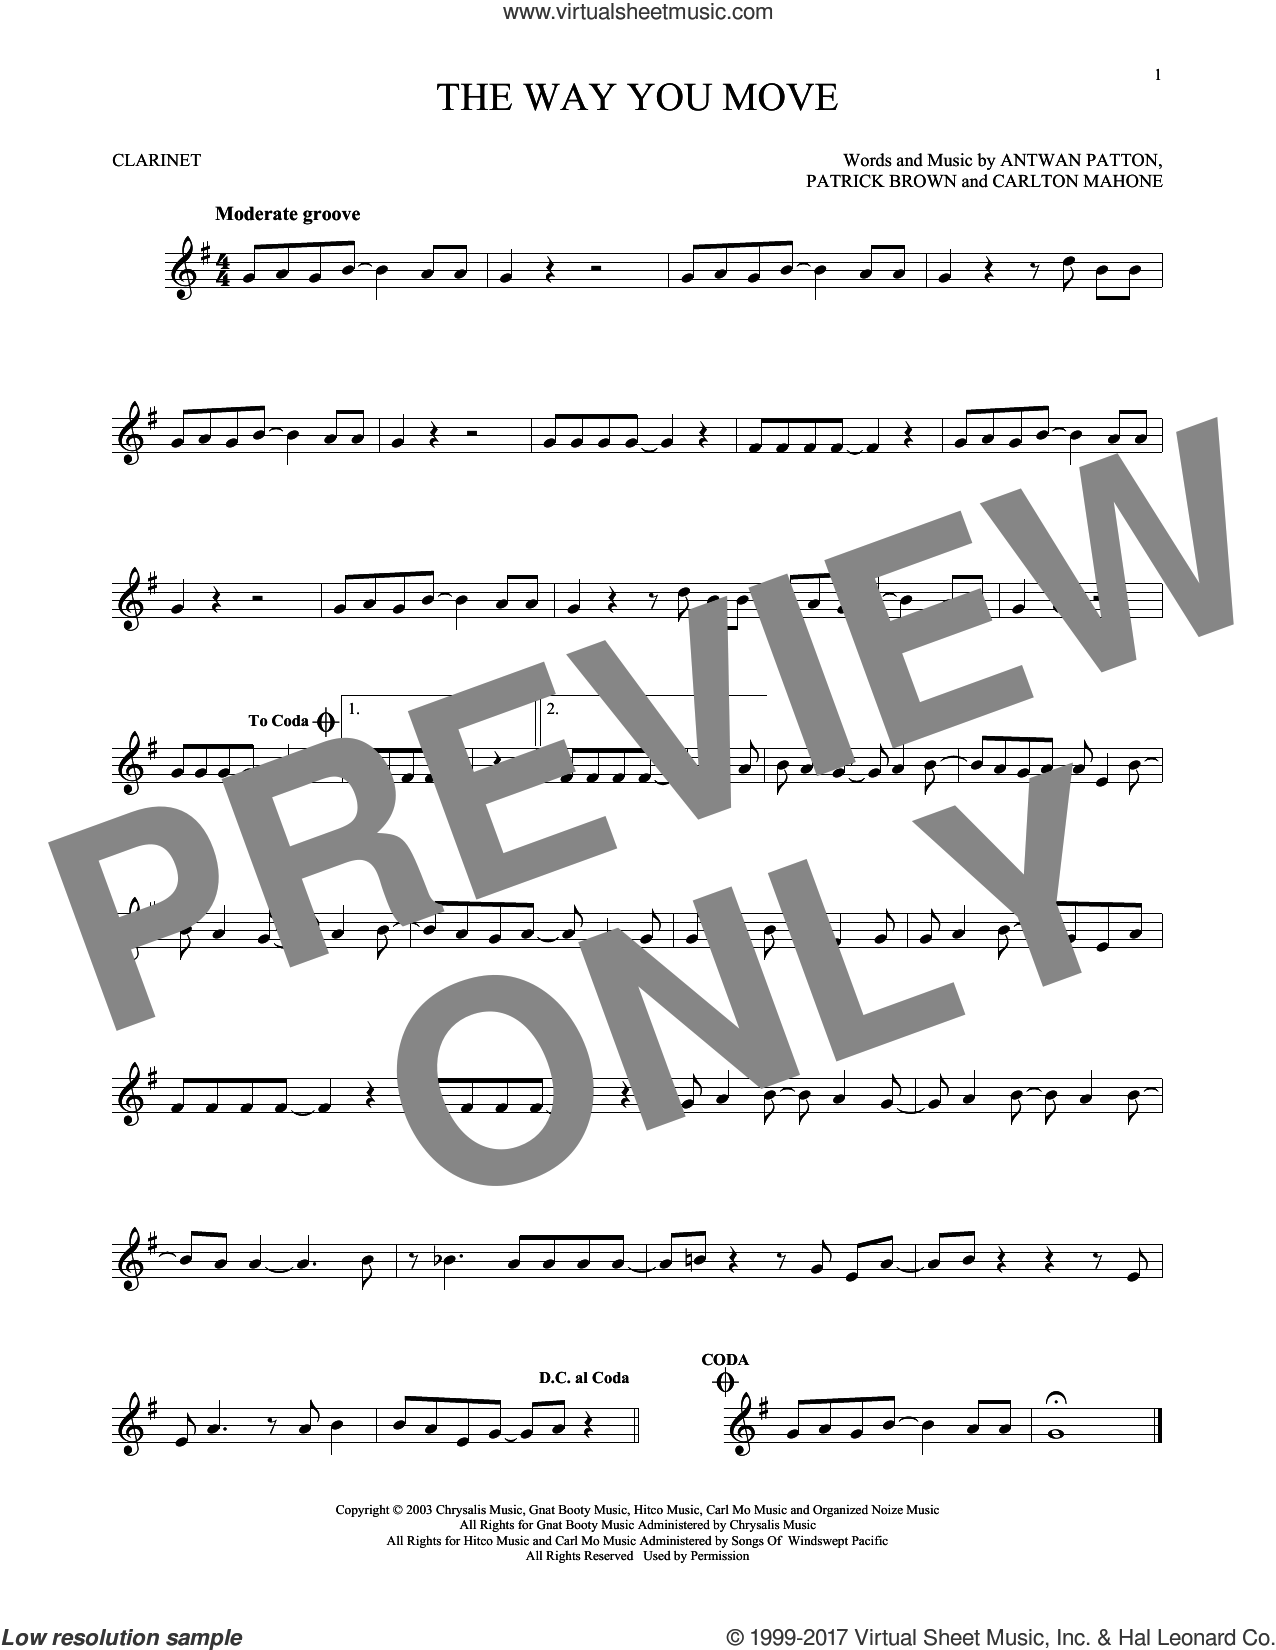 The Way You Move sheet music for clarinet solo by Outkast featuring Sleepy Brown, Antwon Patton, Cartlon Mahone and Patrick Brown, intermediate skill level